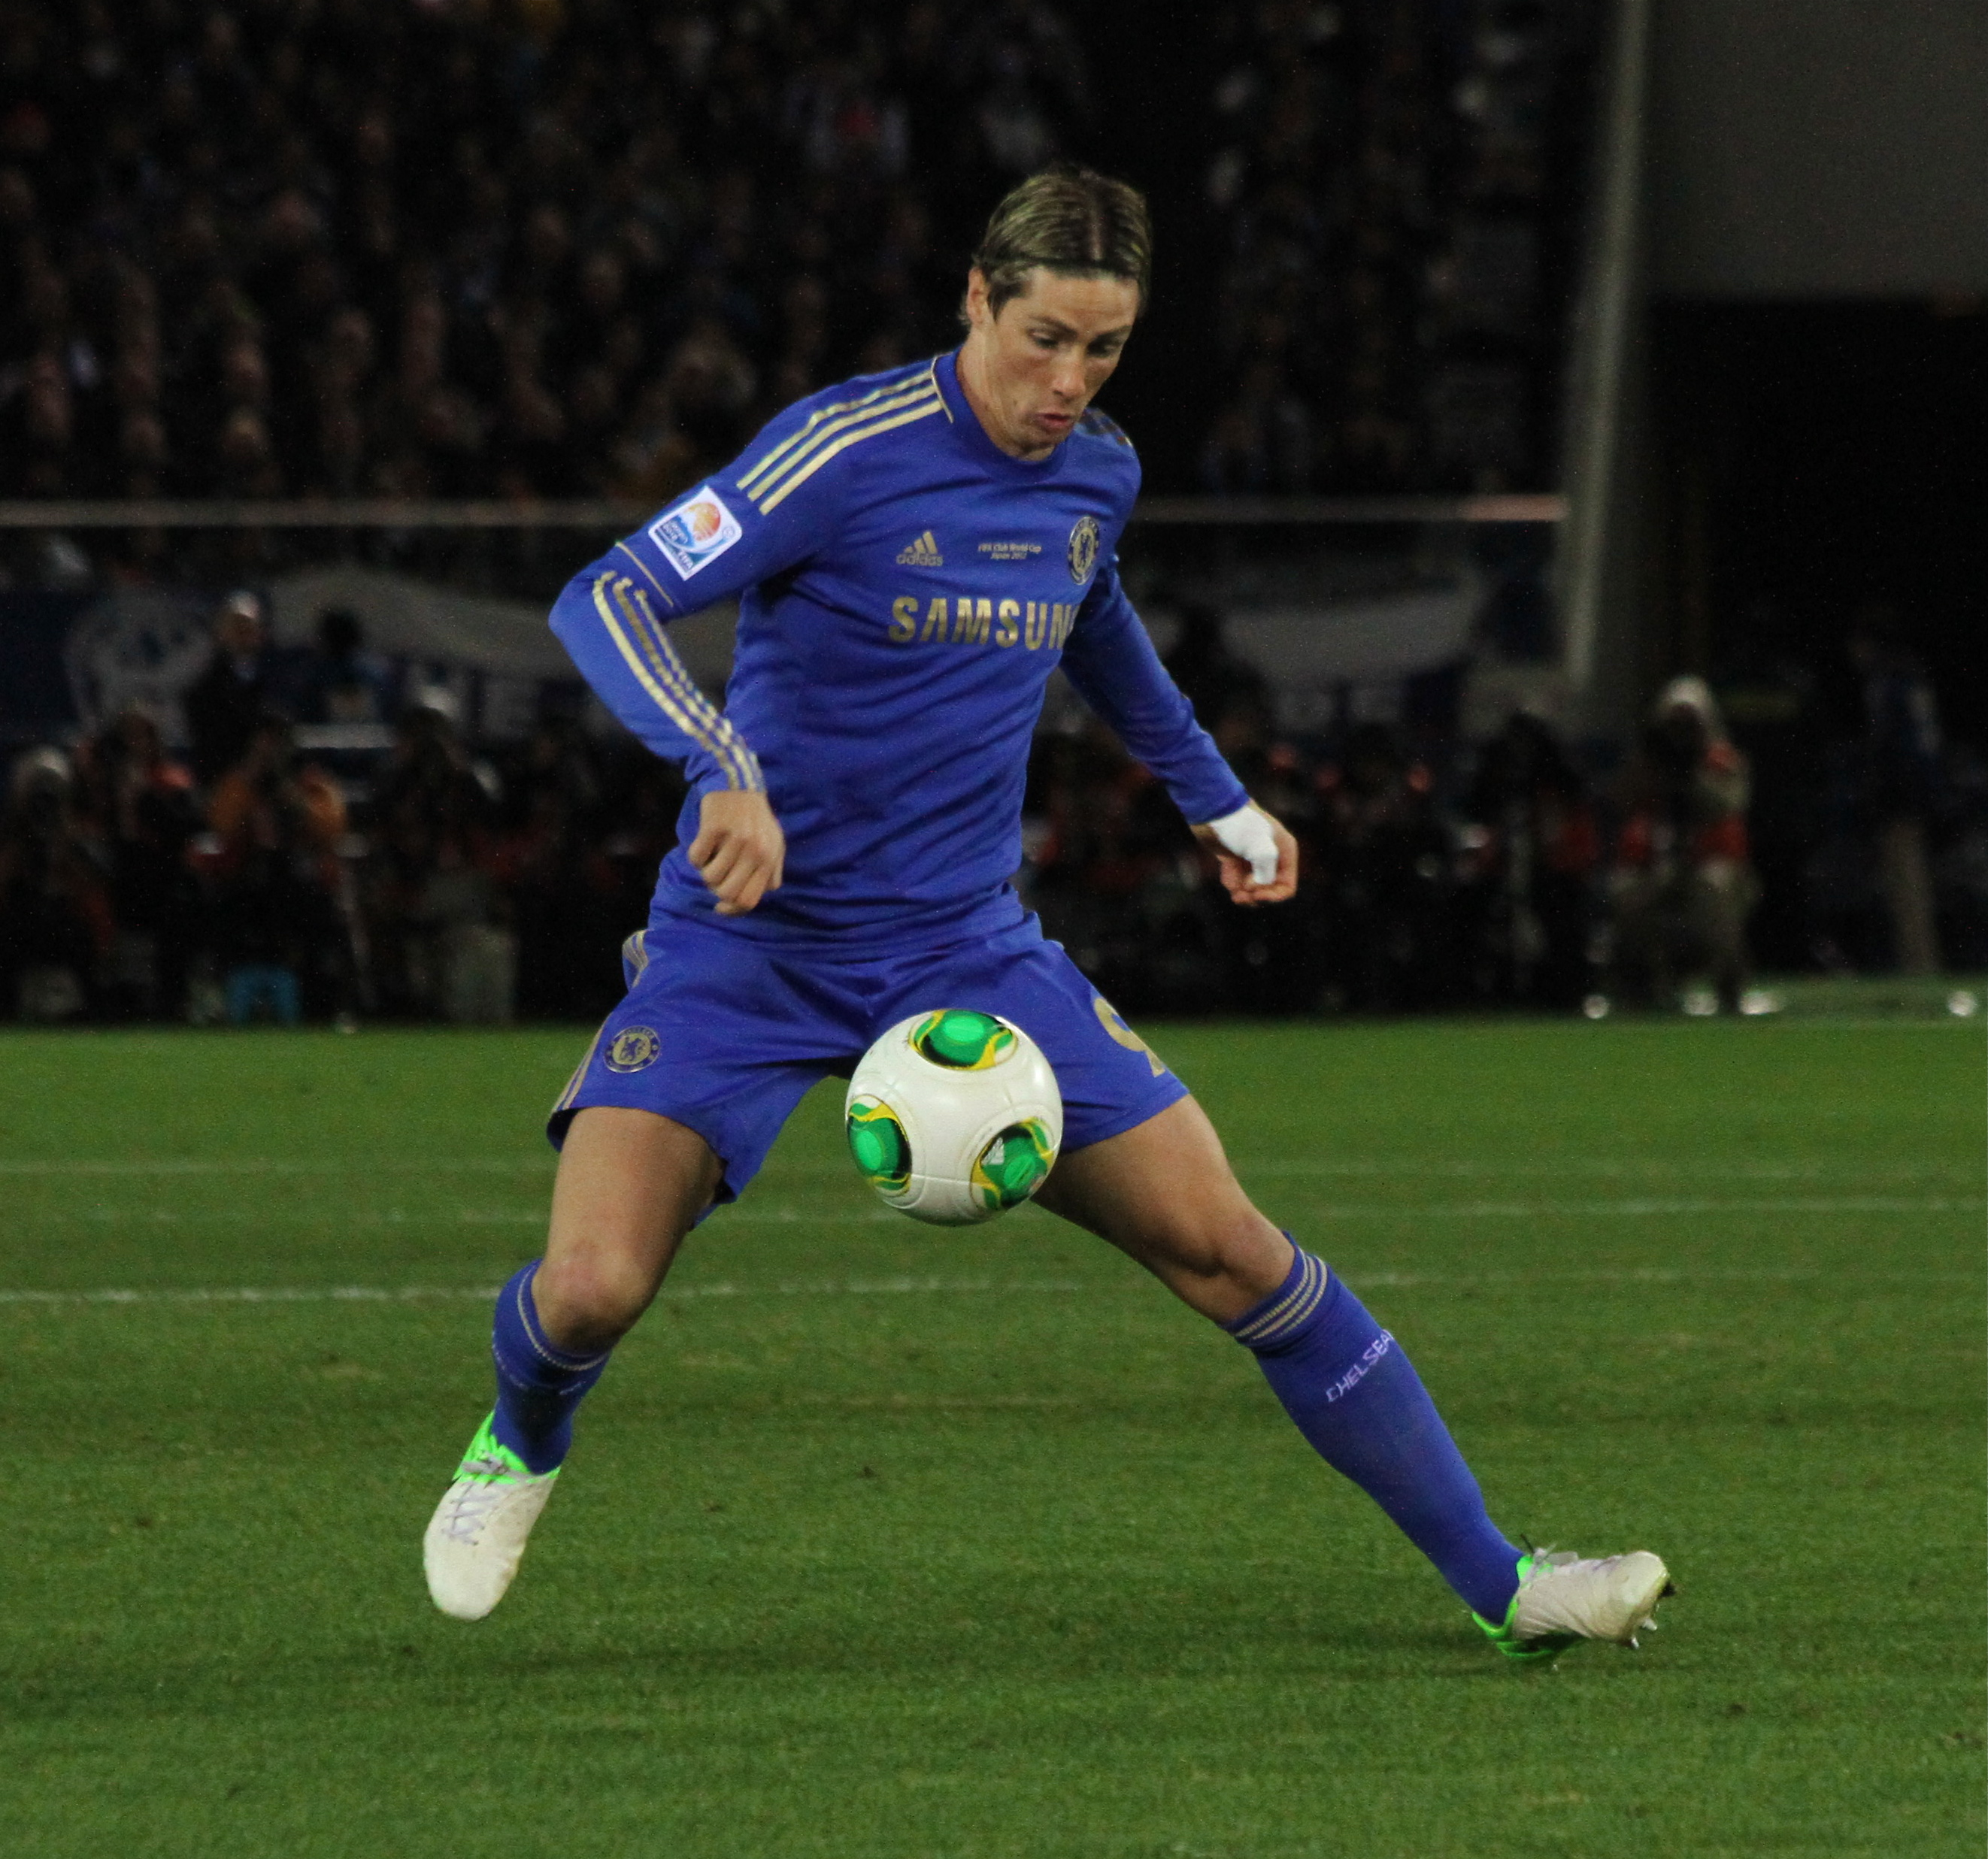 File:Fernando Torres 2012 FIFA Club World Cup.jpg